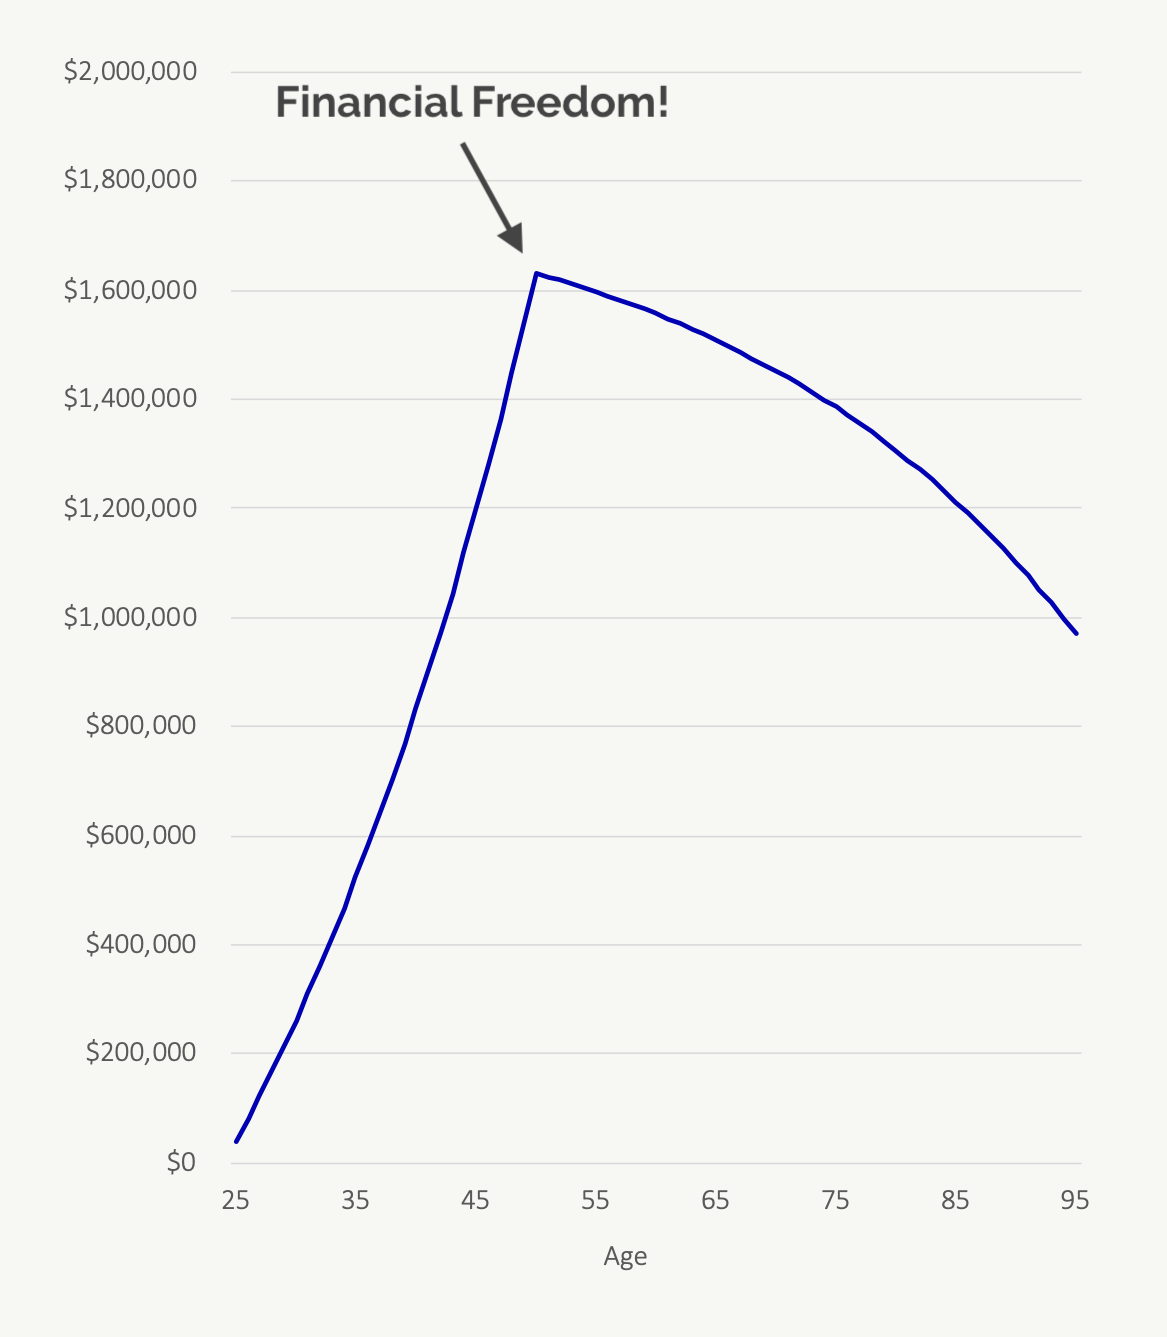 Why We Choose To Spend Our Money On Freedom